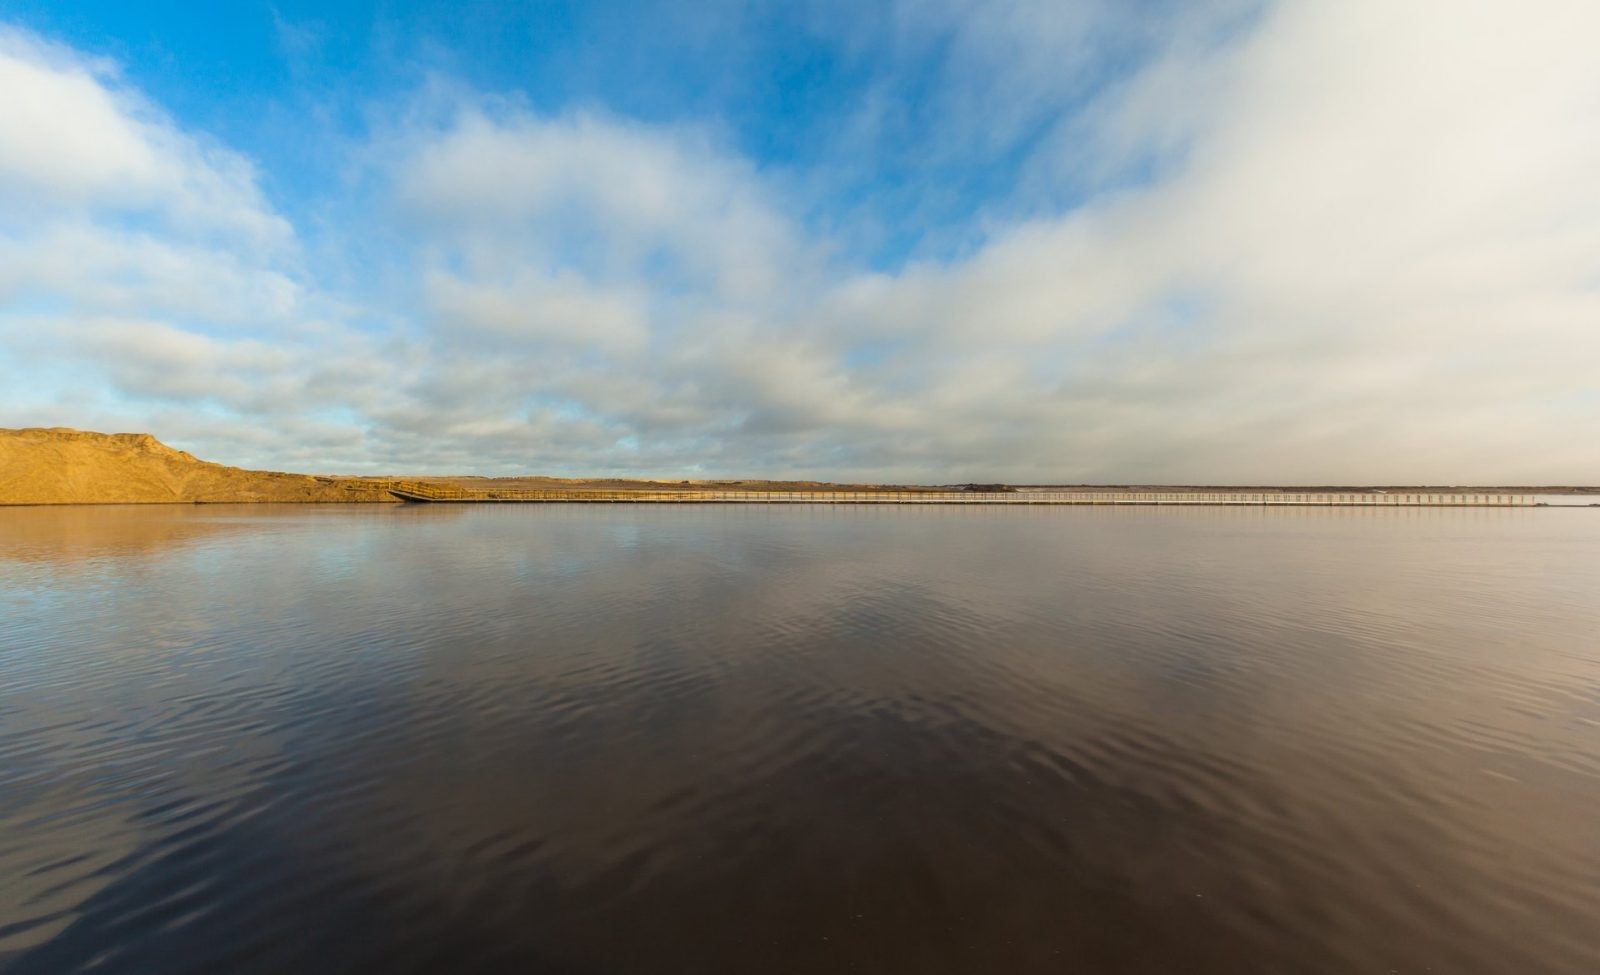 Oilsands without tailings ponds? AER hopes so